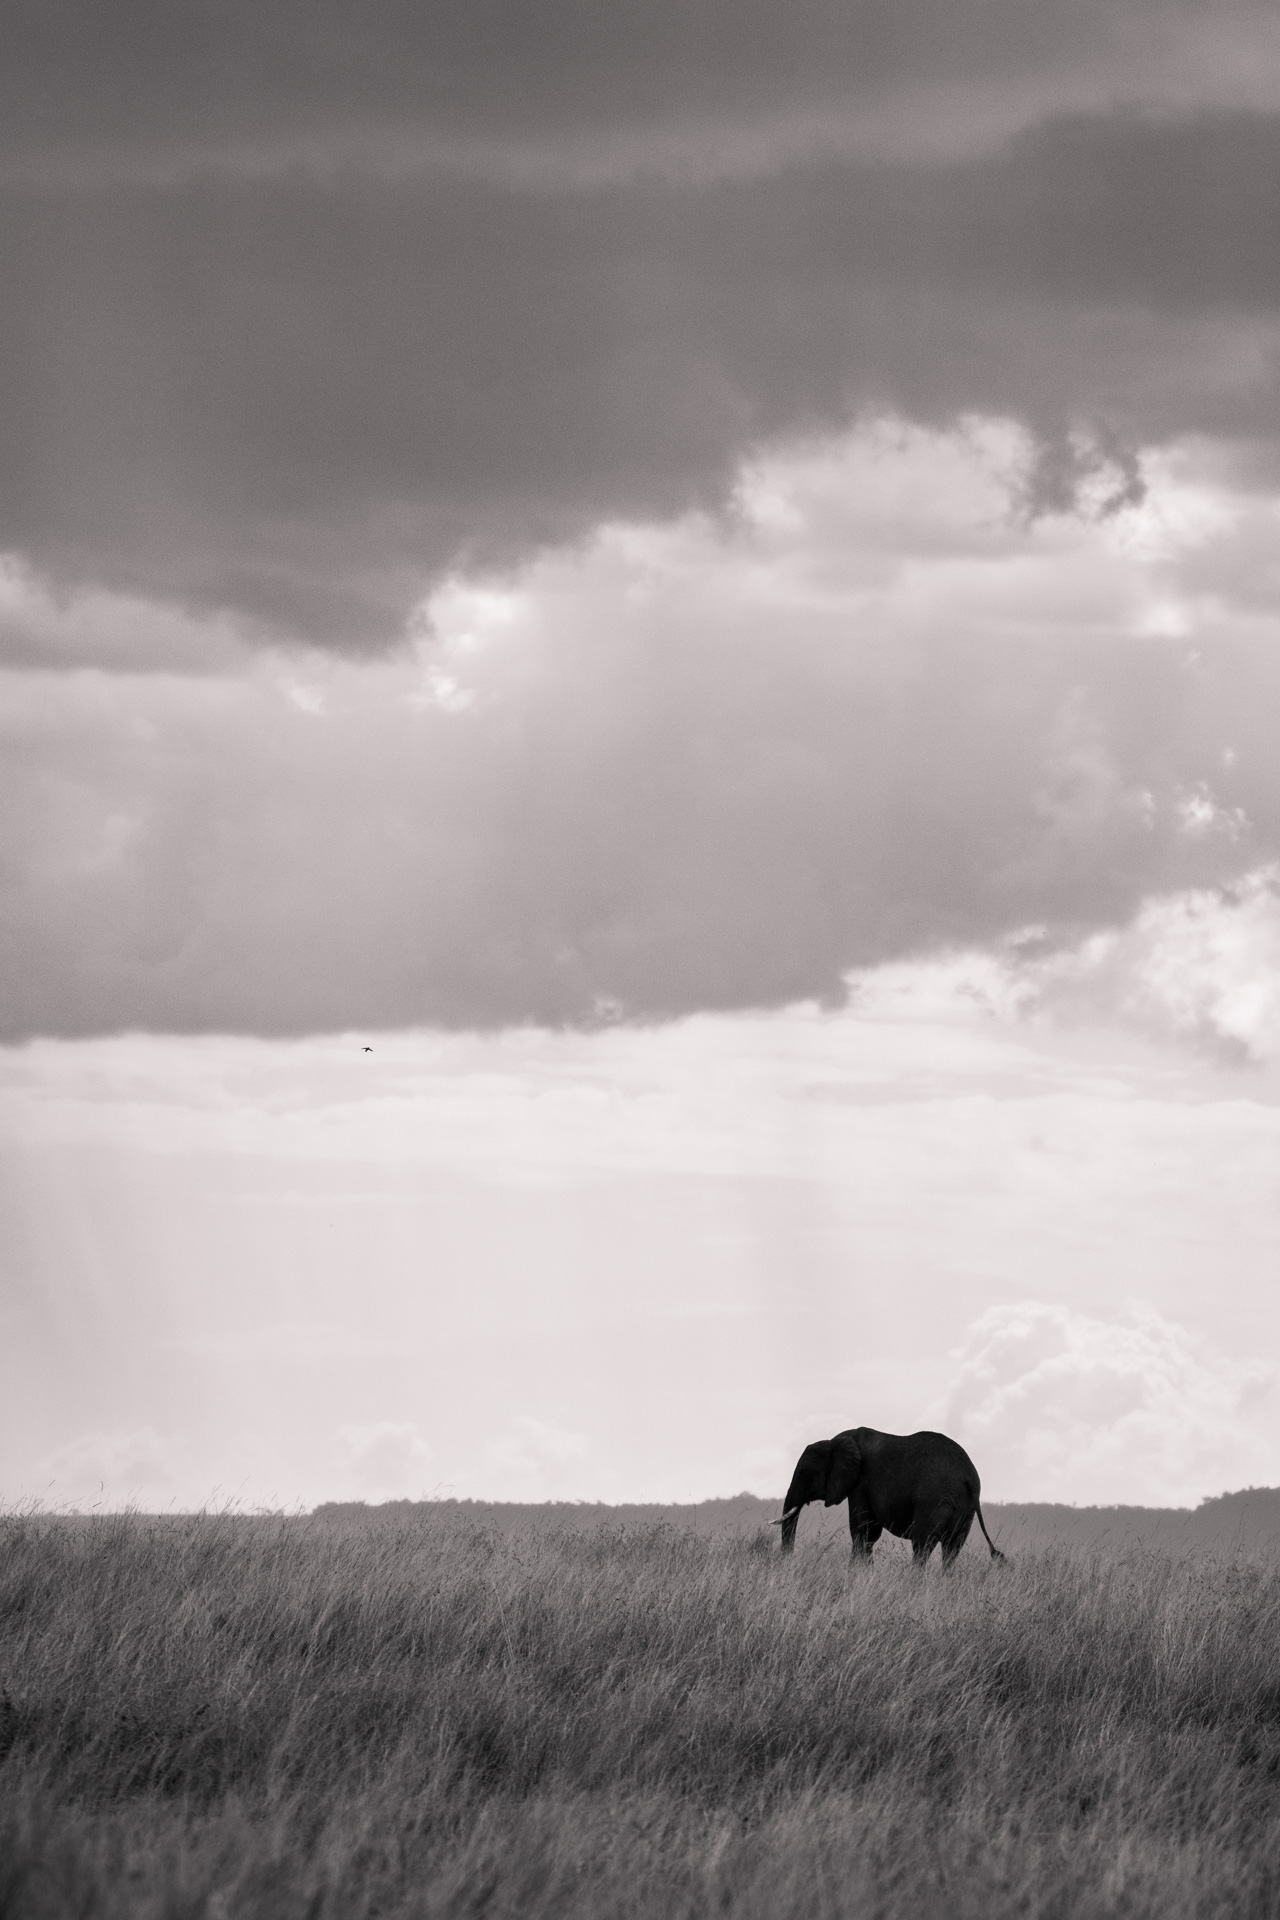 Black and white elephant in the distance